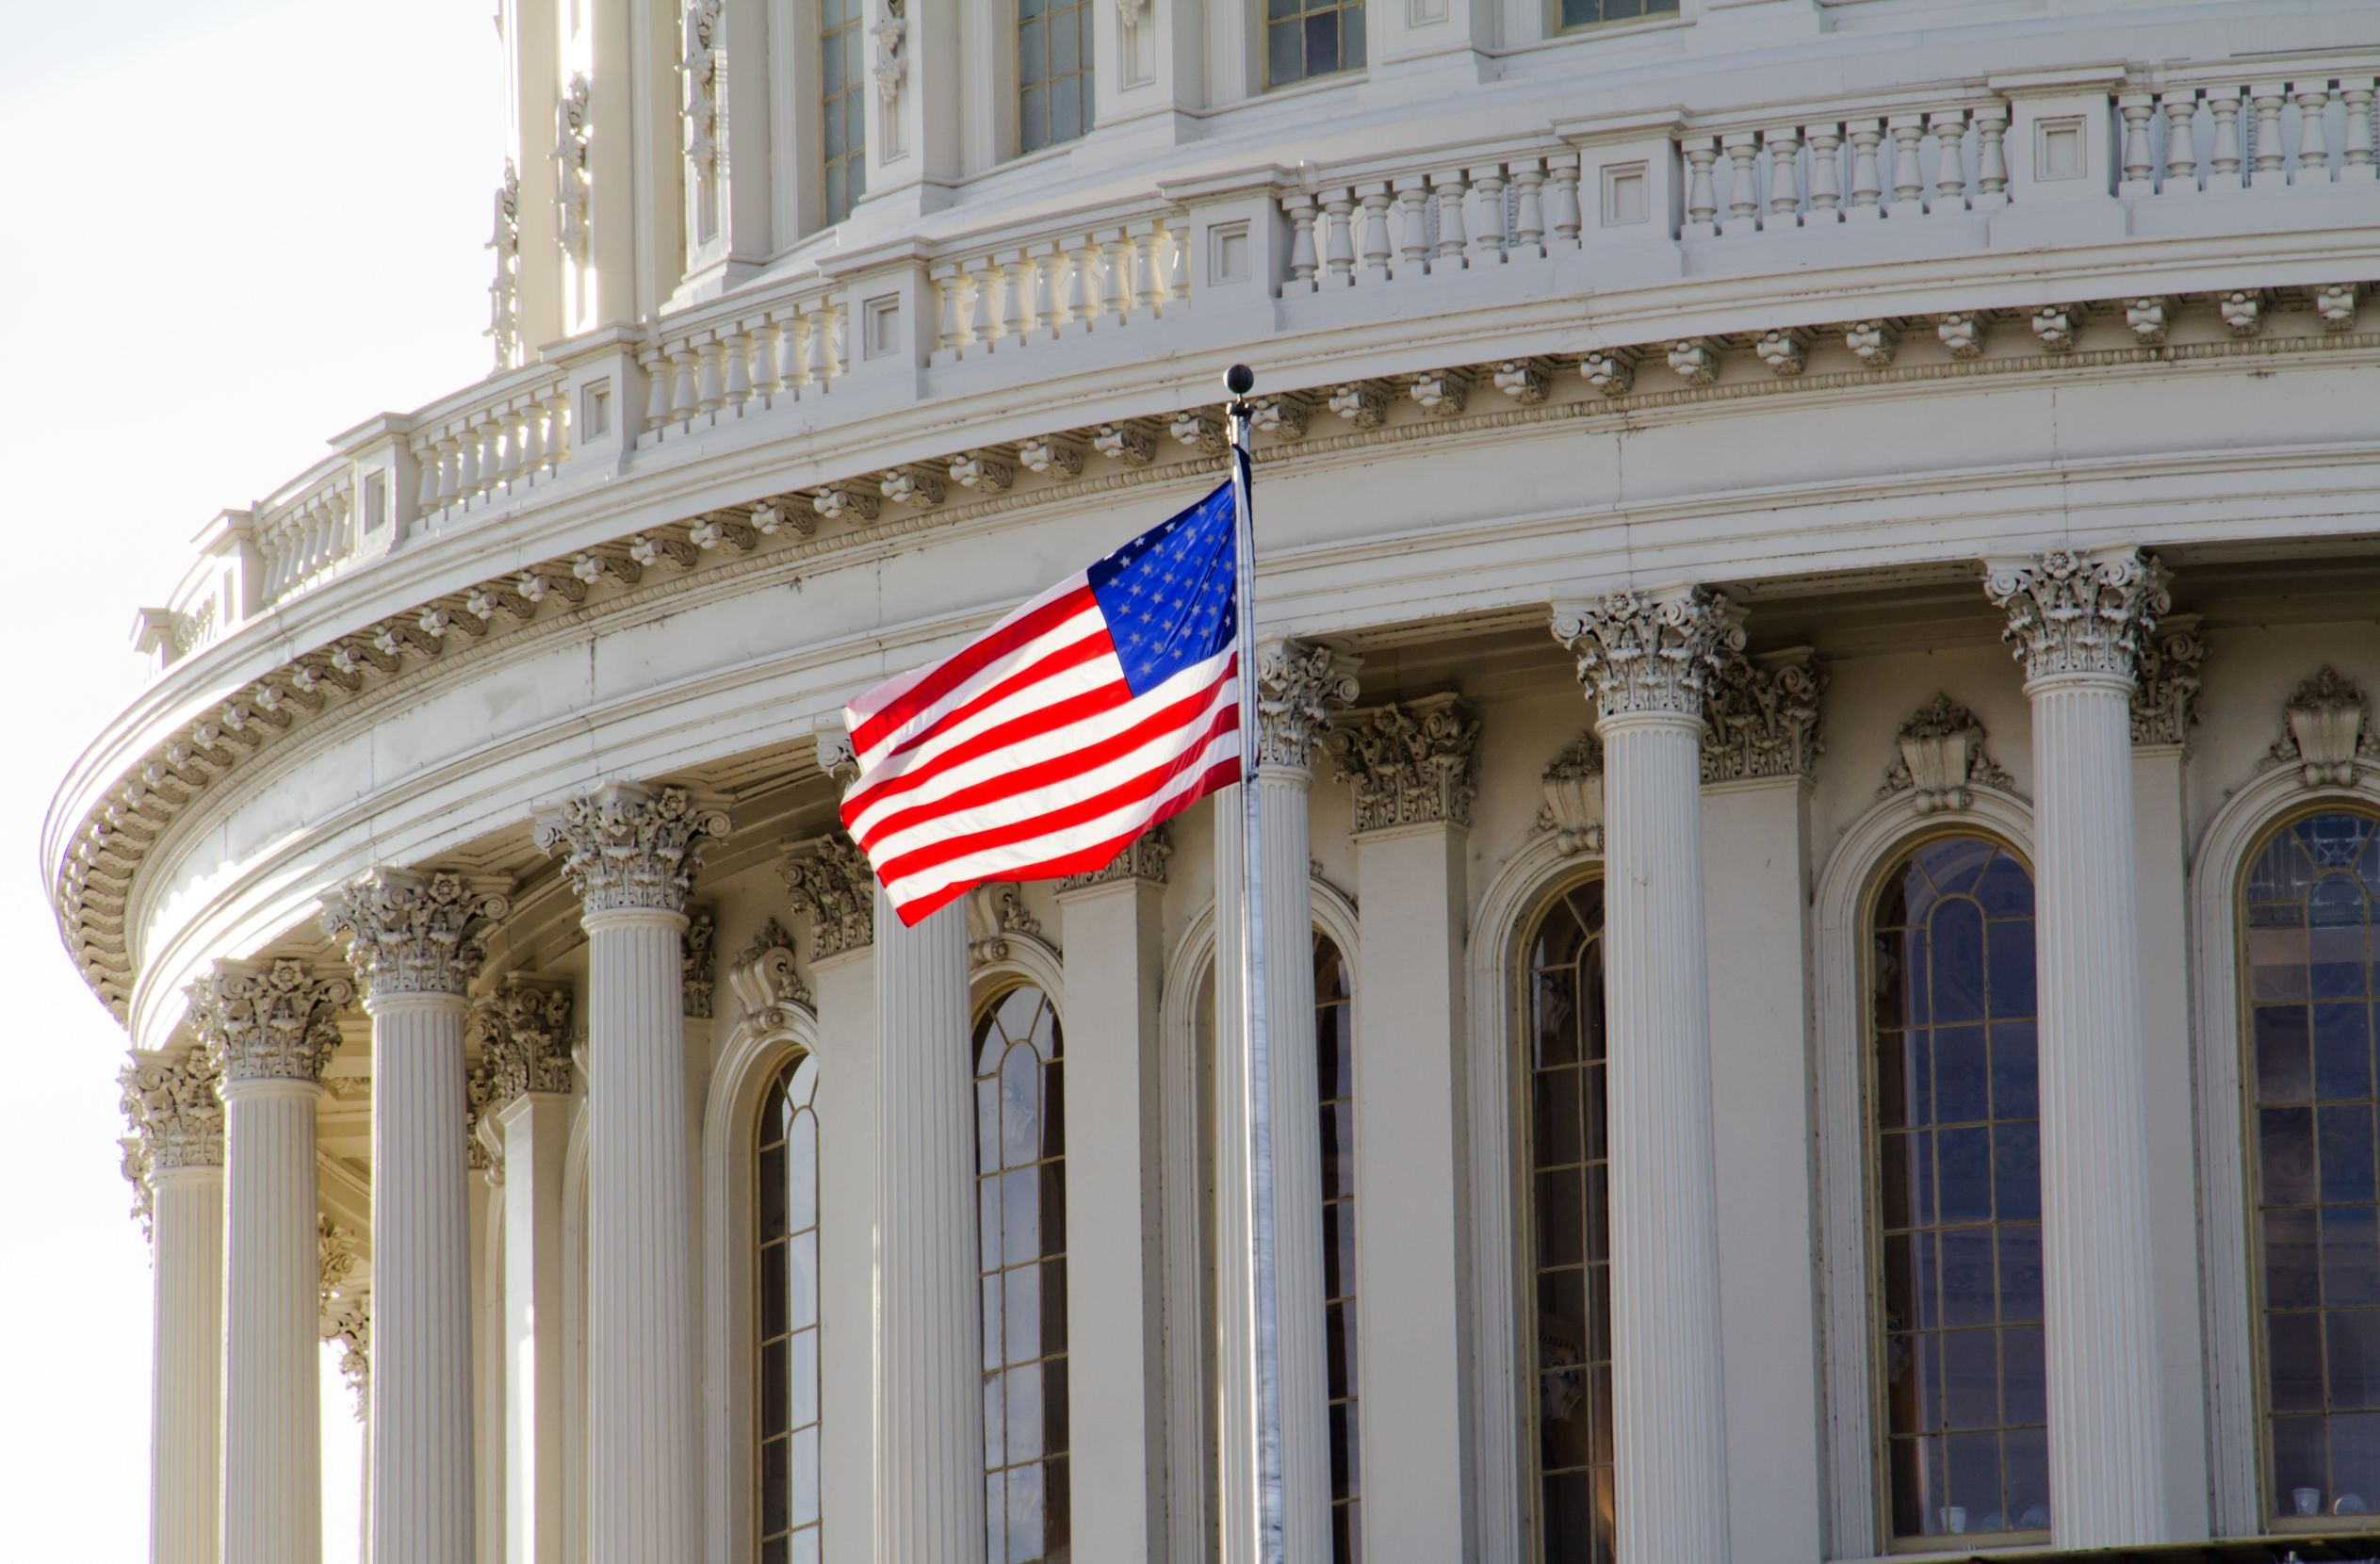 Research Study: Transportation Management in the Federal Government